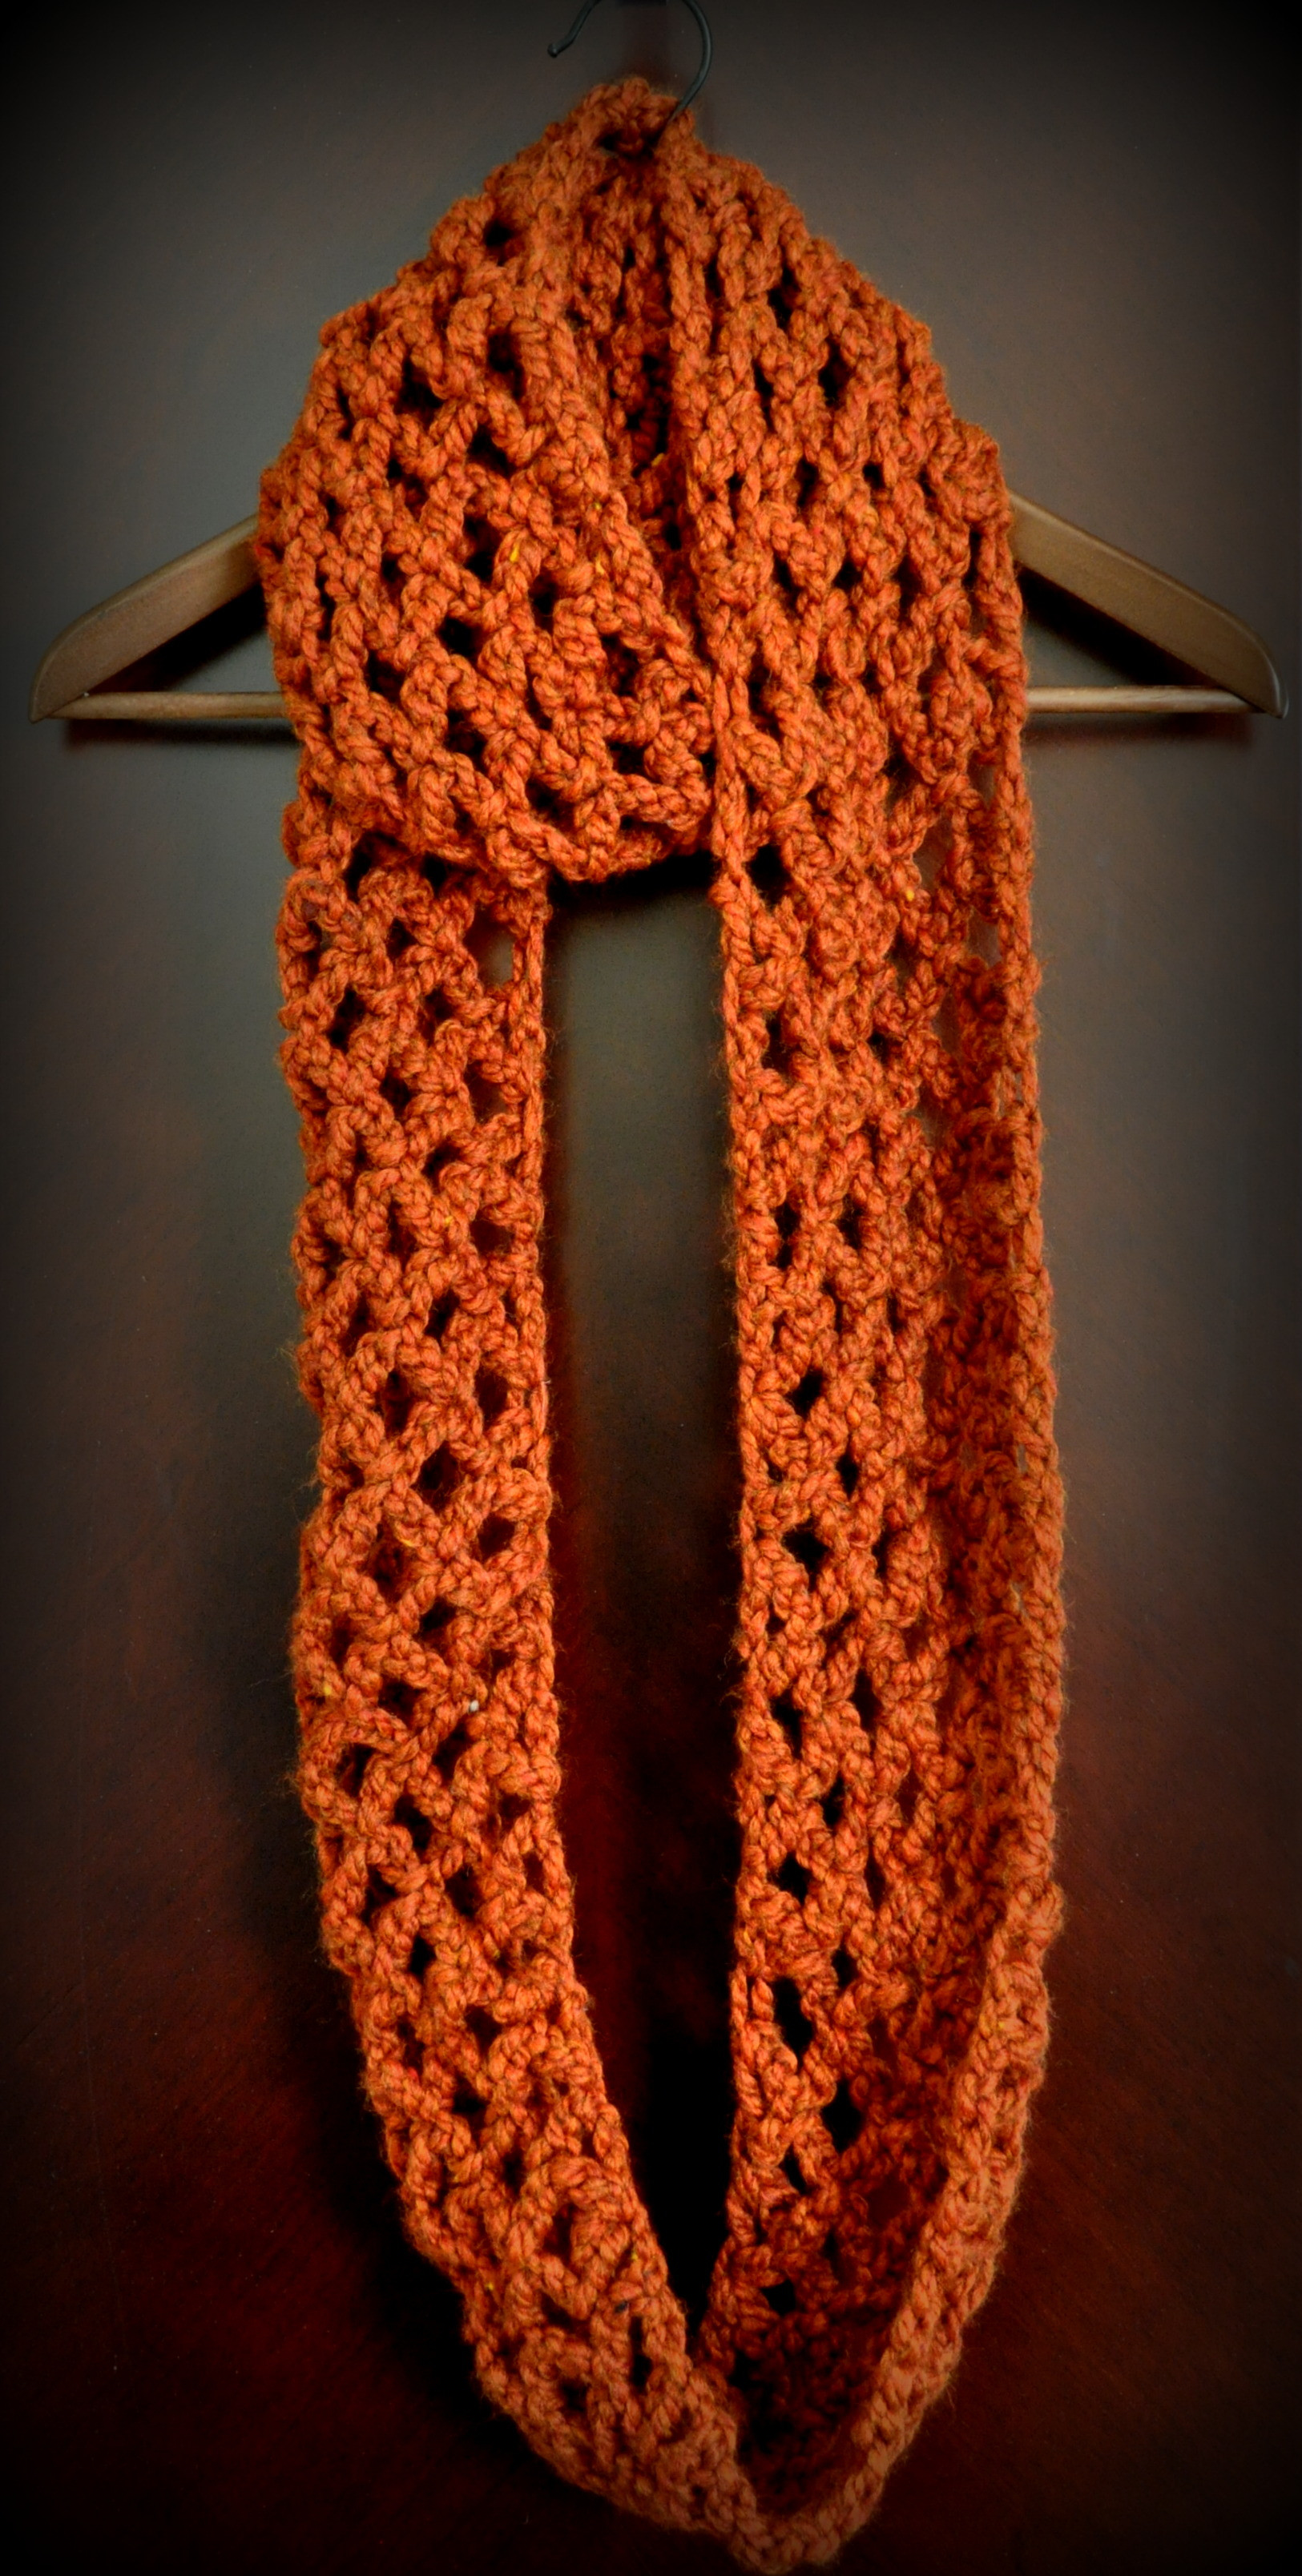 Crochet Scarf Unique Free Pattern Diamond Lattice Chain Crochet Infinity Scarf Of Incredible 48 Images Crochet Scarf